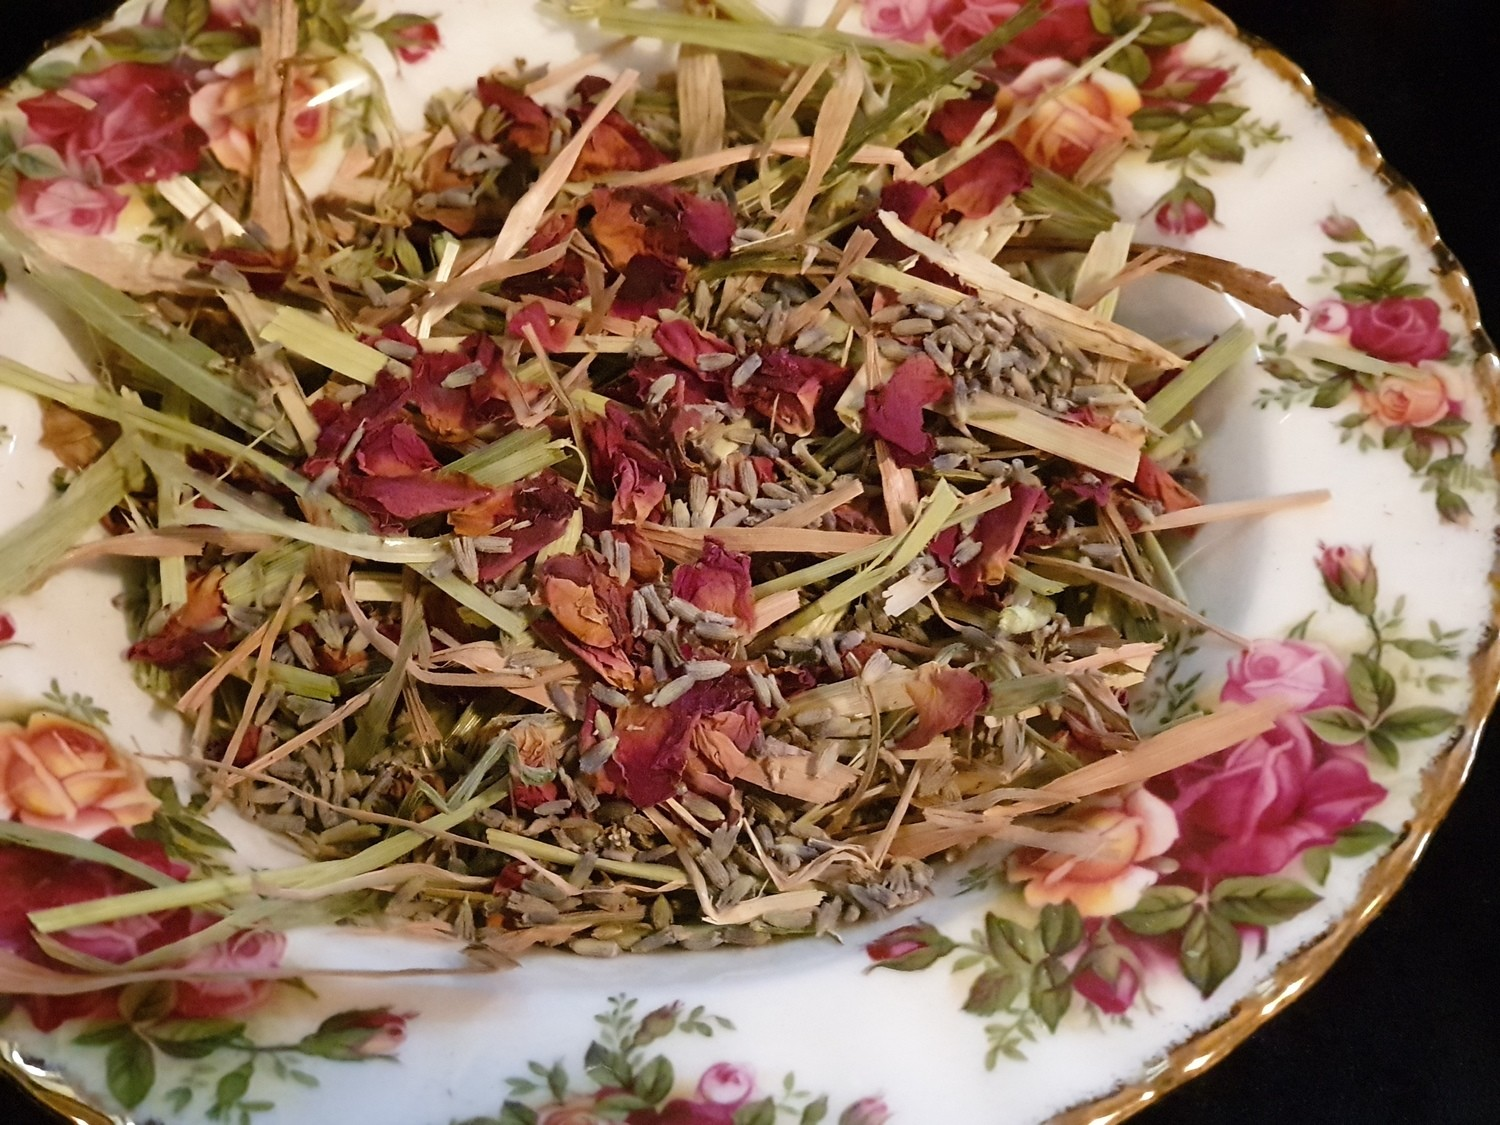 Show grade oaten hay chaff with organic rose petals & lavender